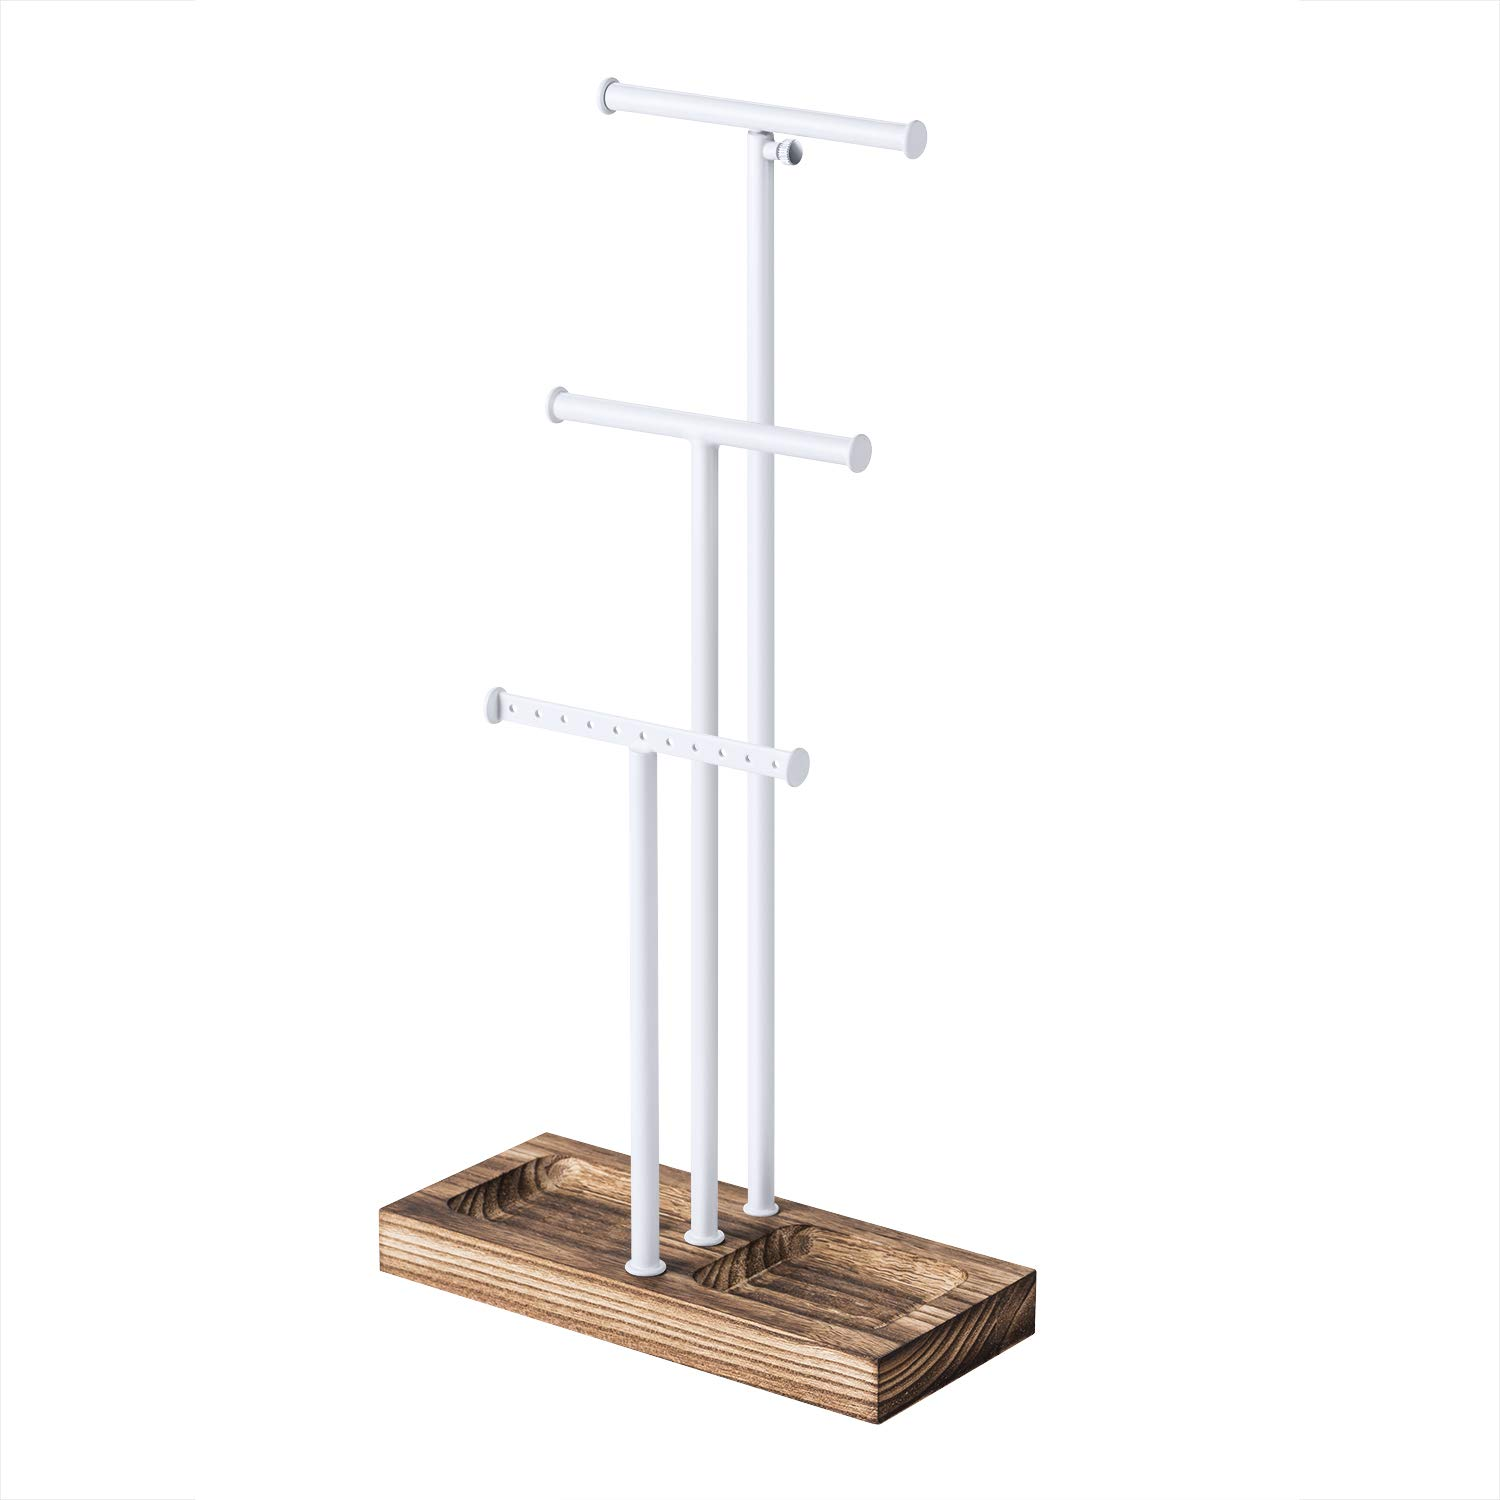 Love-KANKEI Jewelry Tree Stand White Metal & Wood - Basic & Large Storage Necklaces Bracelets Earrings Holder Organizer(Natural Wood)